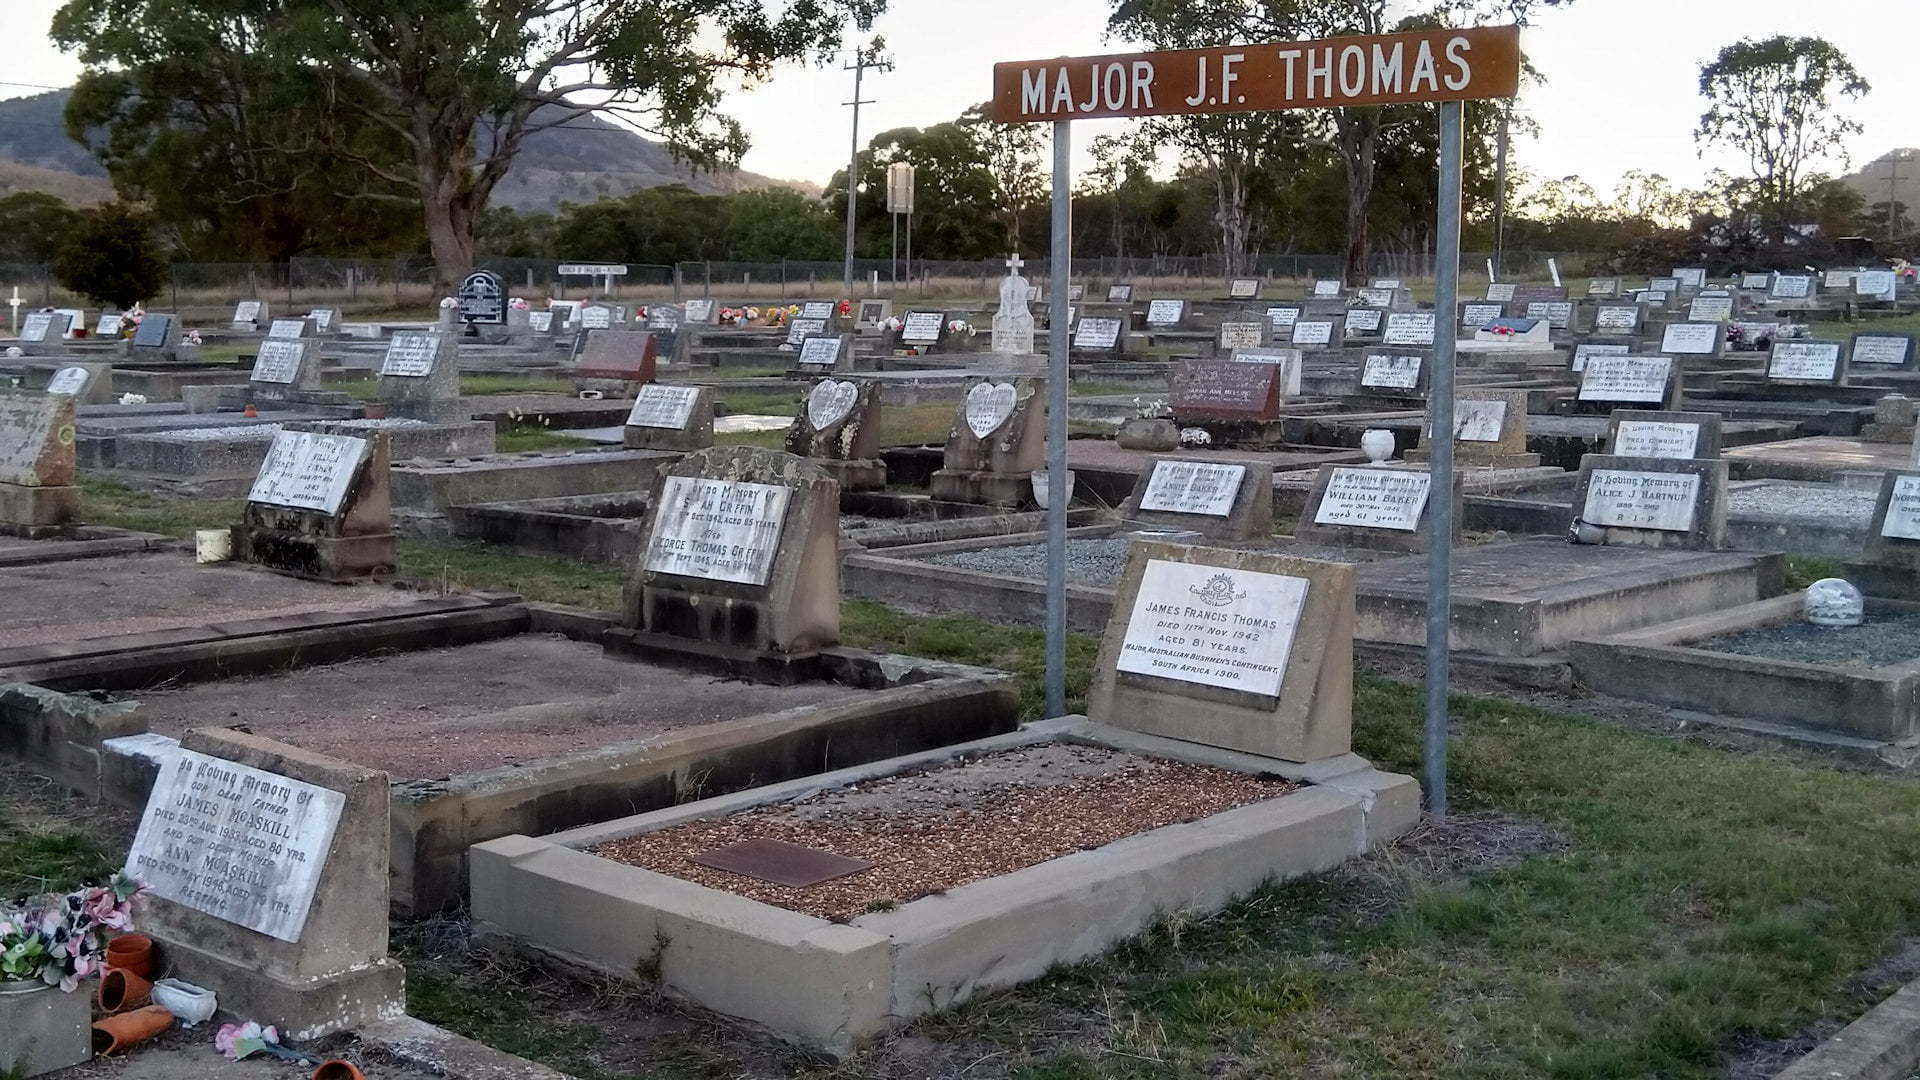 Grave in a cemetery with a brown sign above it, Major J.F. Thomas, taken at Tenterfield cemetery